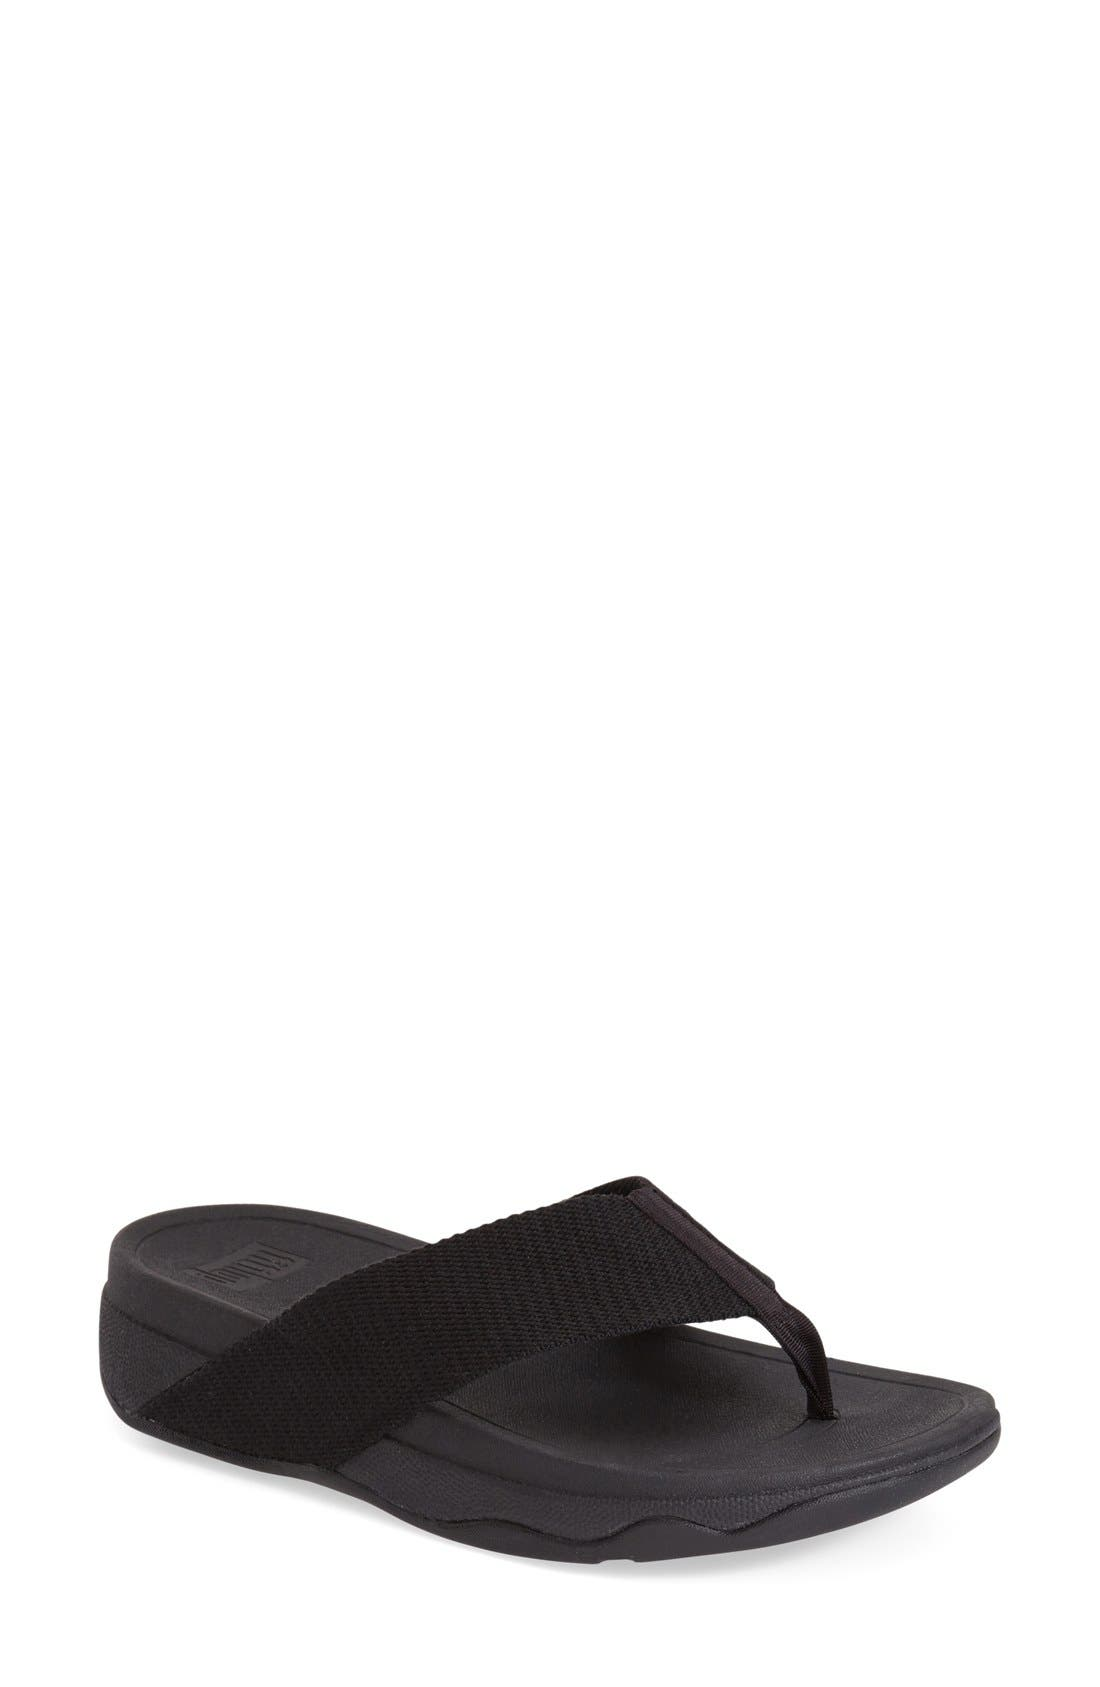 'Surfa' Thong Sandal,                             Main thumbnail 2, color,